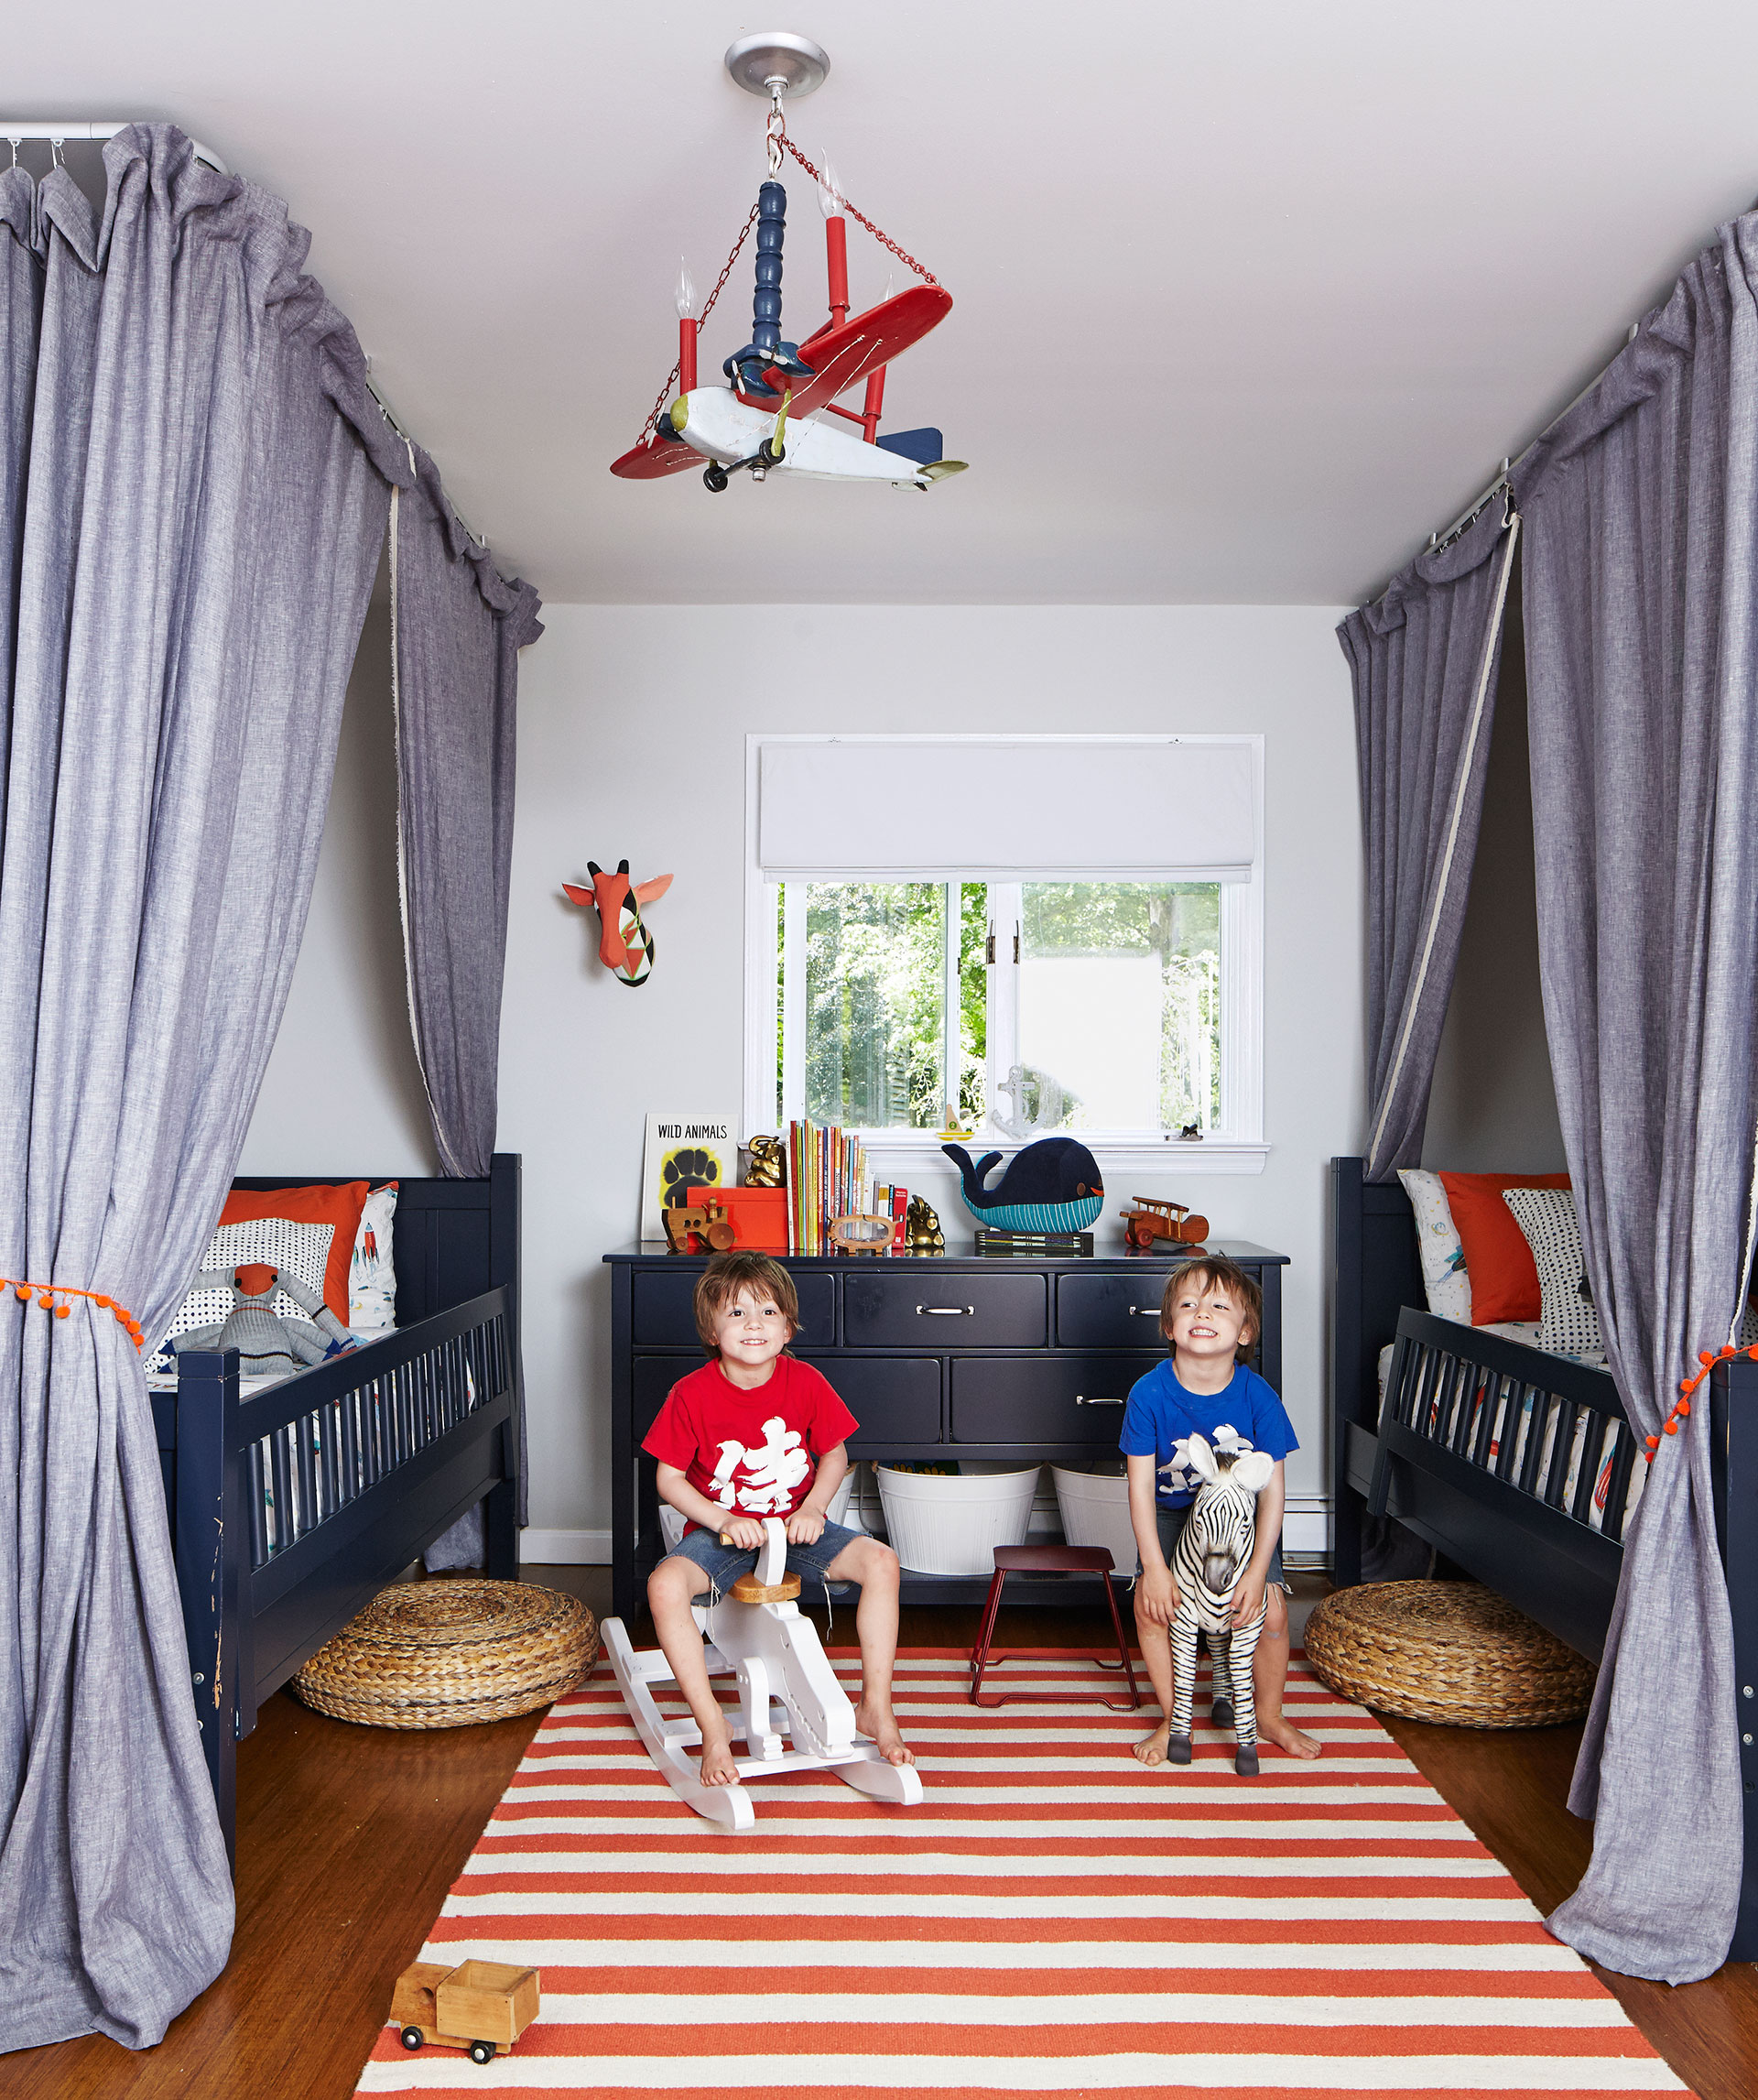 Toddlers Room Ideas 50 Kids Room Decor Ideas  Bedroom Design And Decorating For Kids